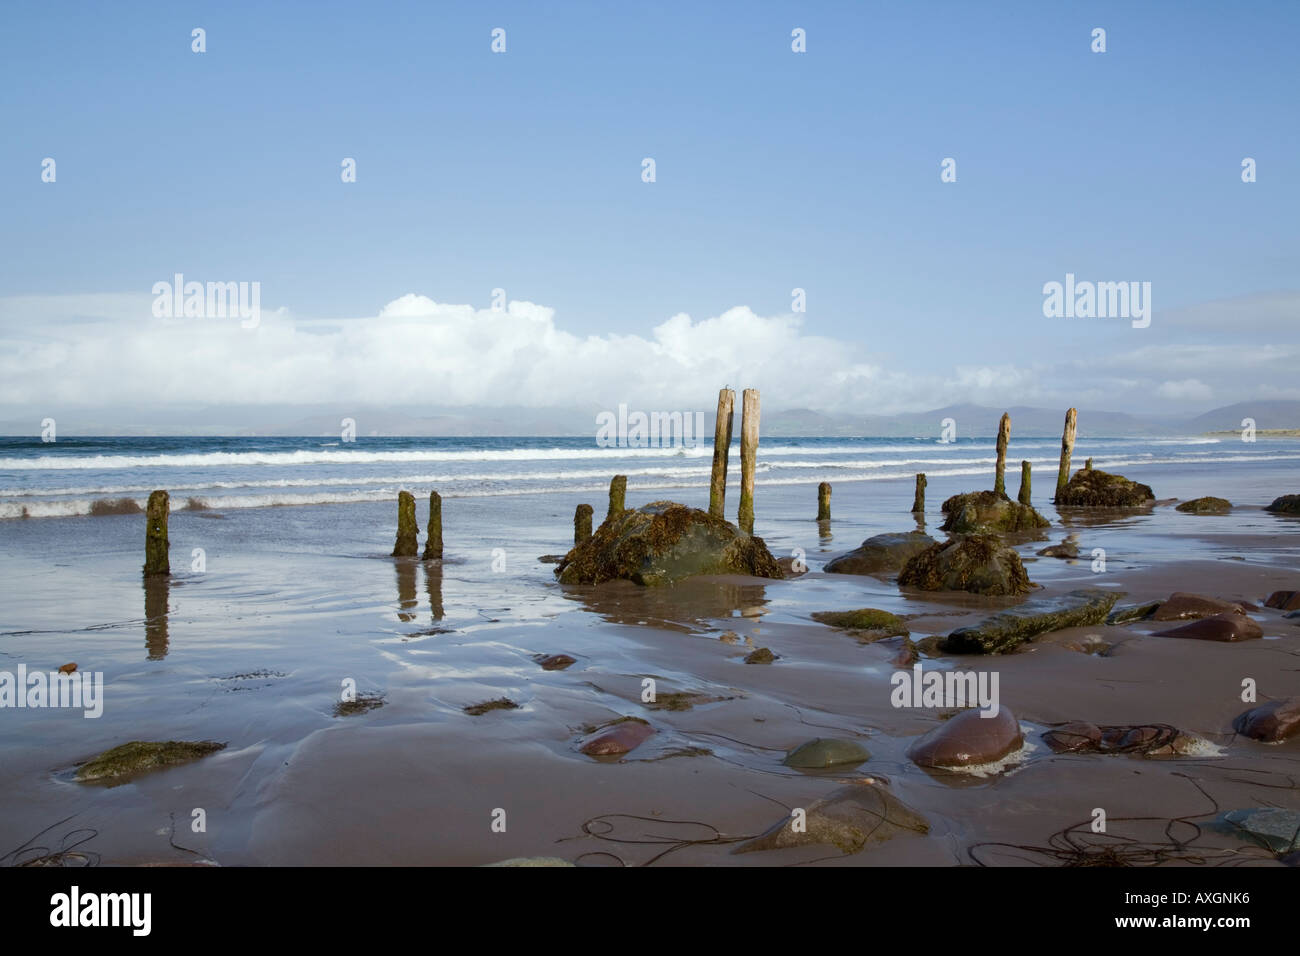 Wooden posts and rocks on wet sand on empty beach of Ross Strand Rossbeigh Co Kerry Eire Europe - Stock Image